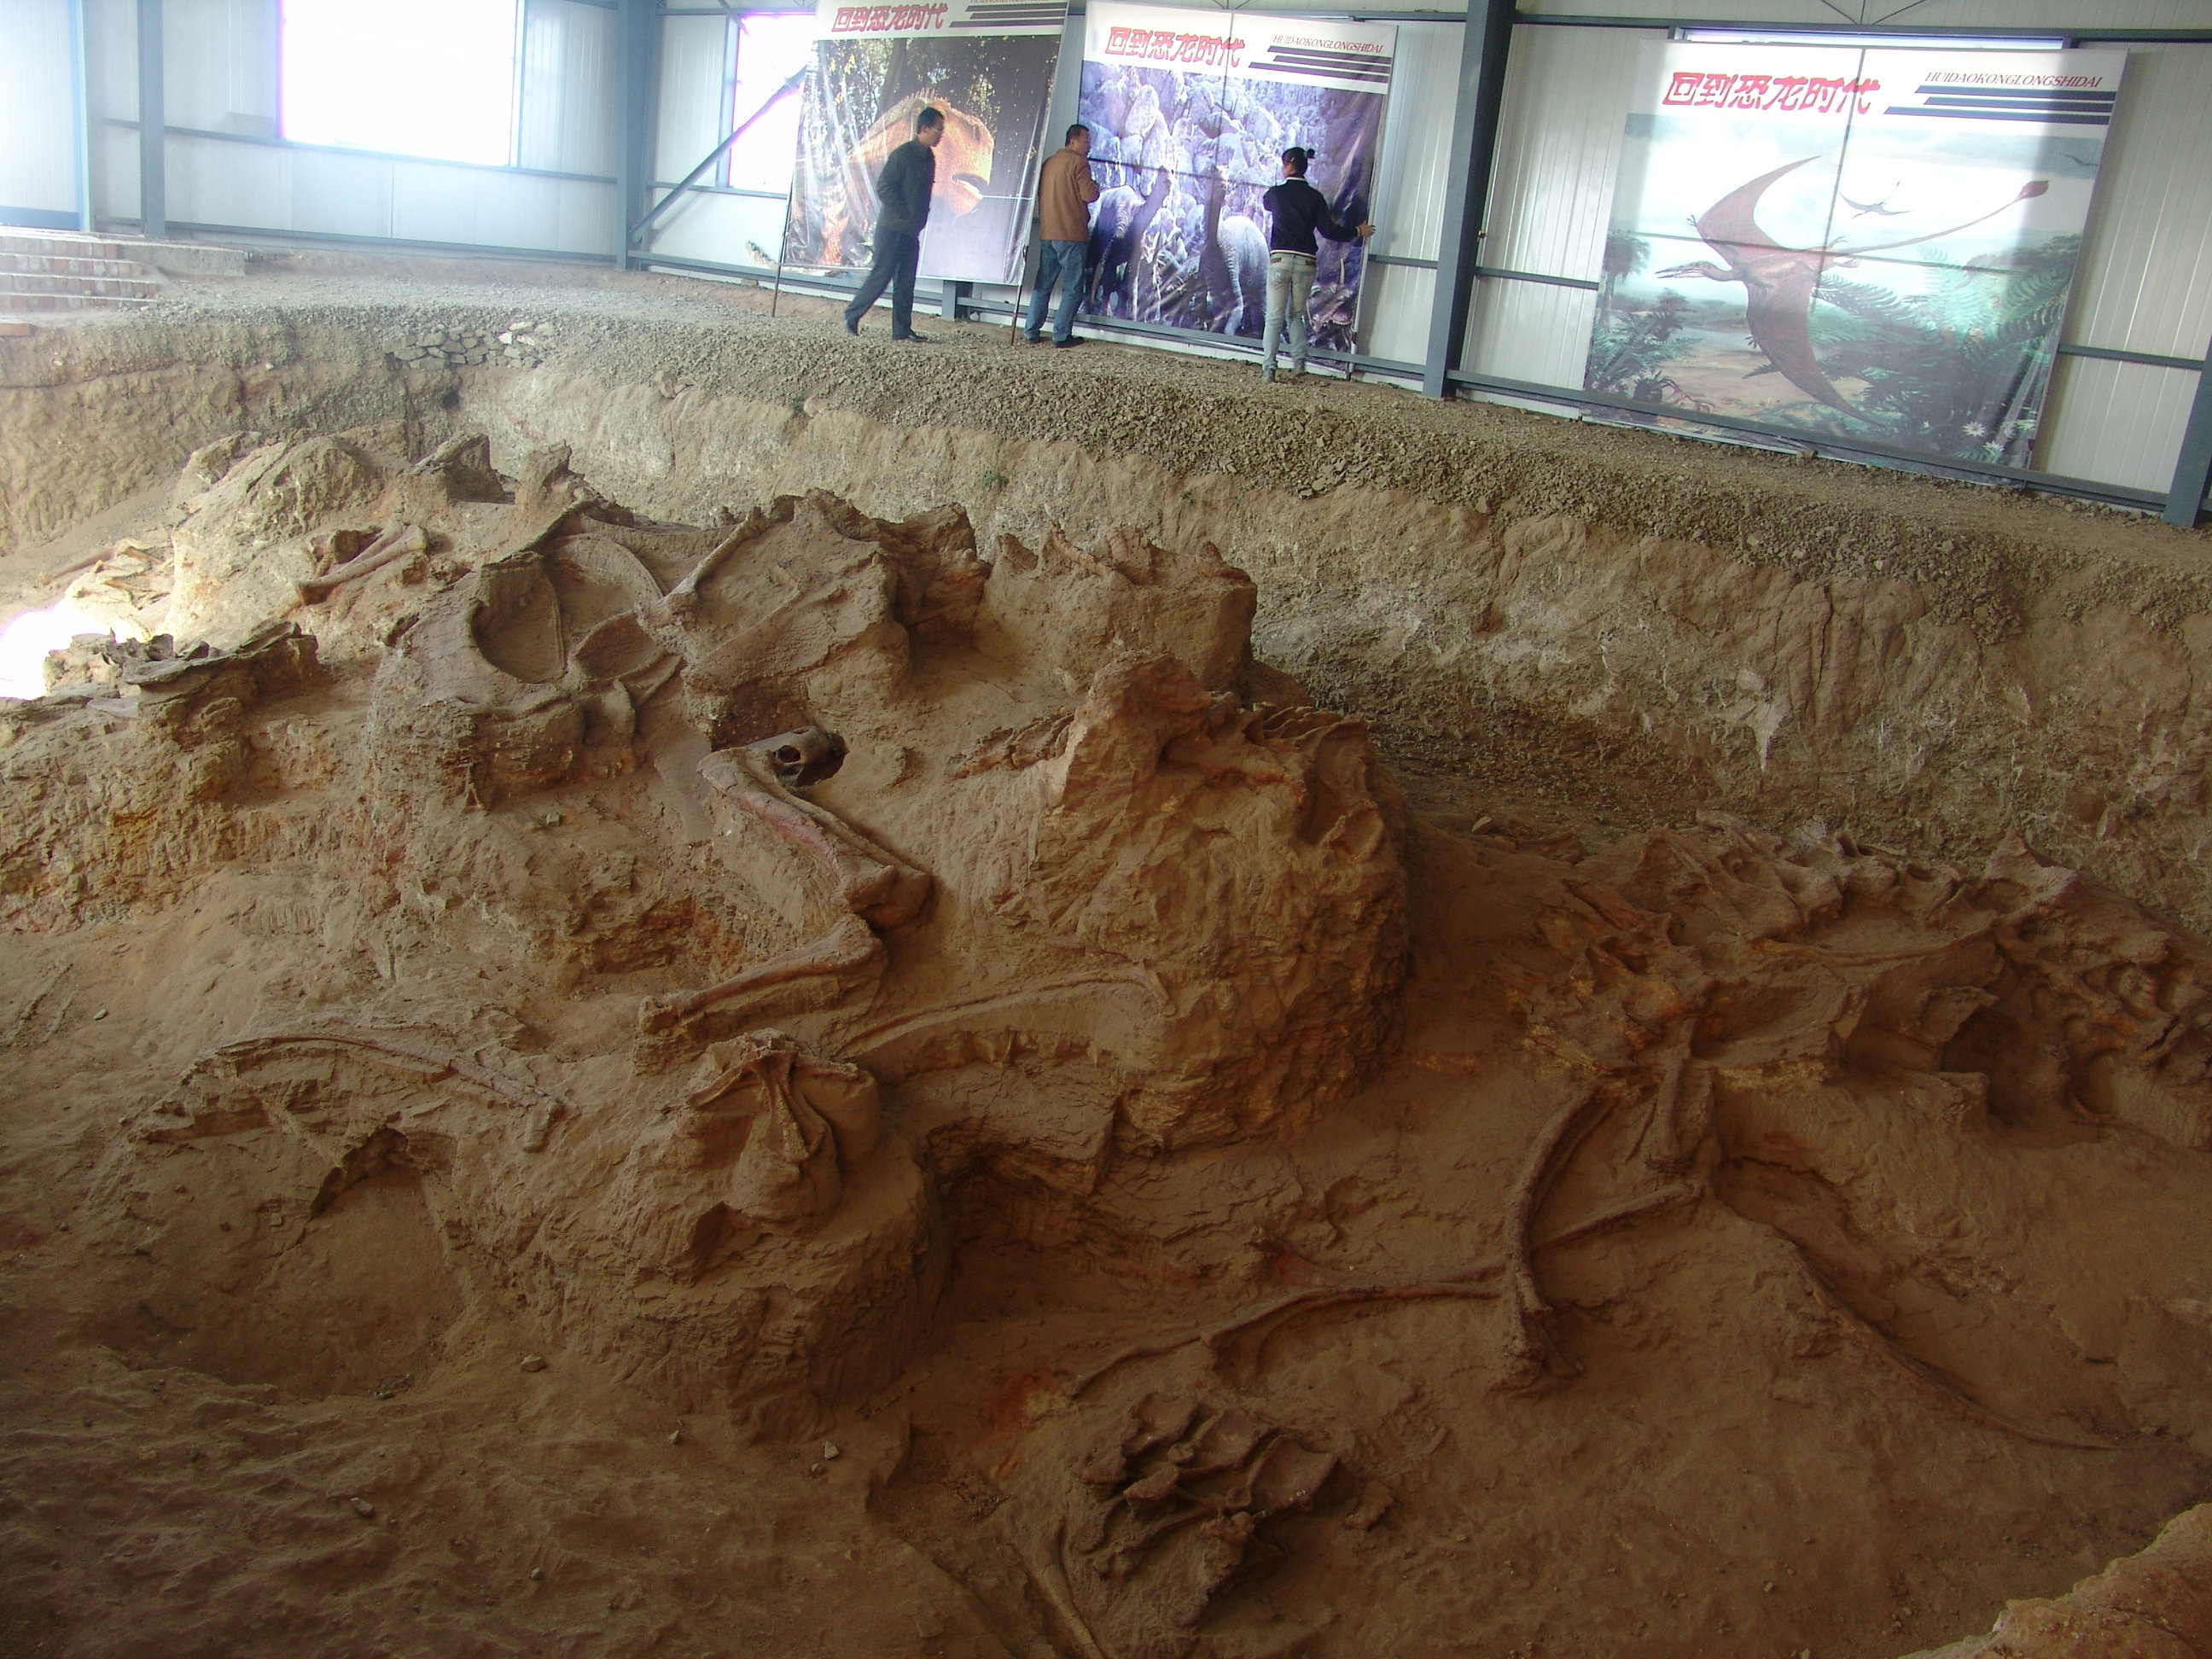 One of the four quarries producing fossils of Lingwulong, a newly discovered dinosaur unearthed in northwestern China is seen in this image provided July 24, 2018.